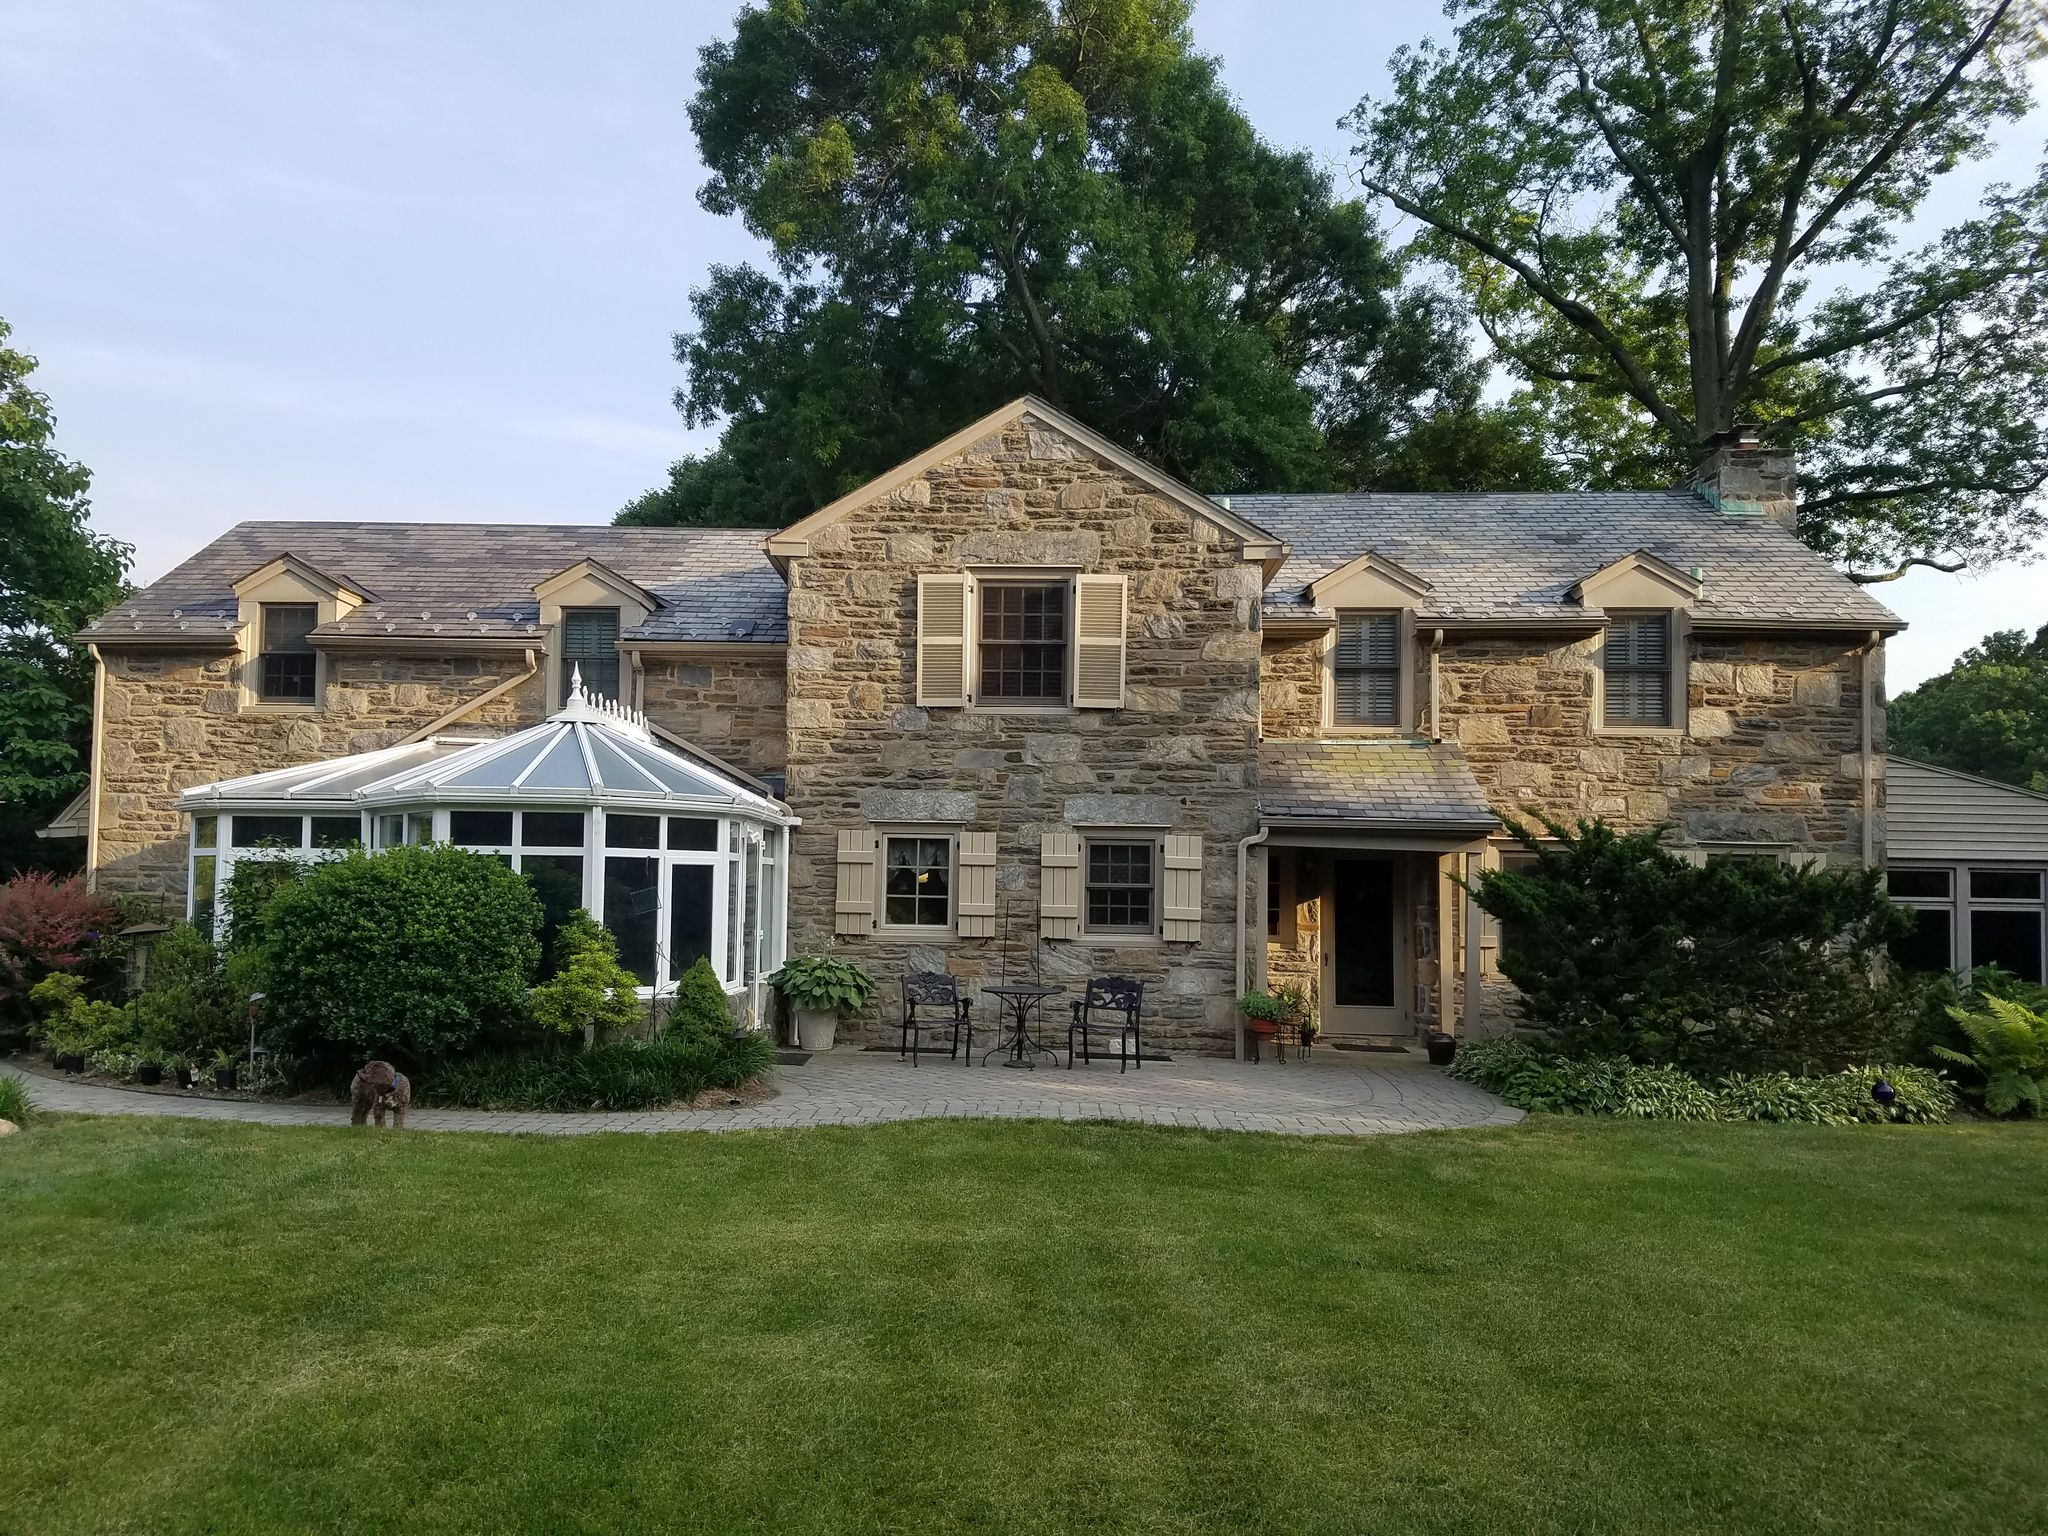 1 Stanfield Ave Broomall Pa 19008 4 Bed 5 Bath Single Family